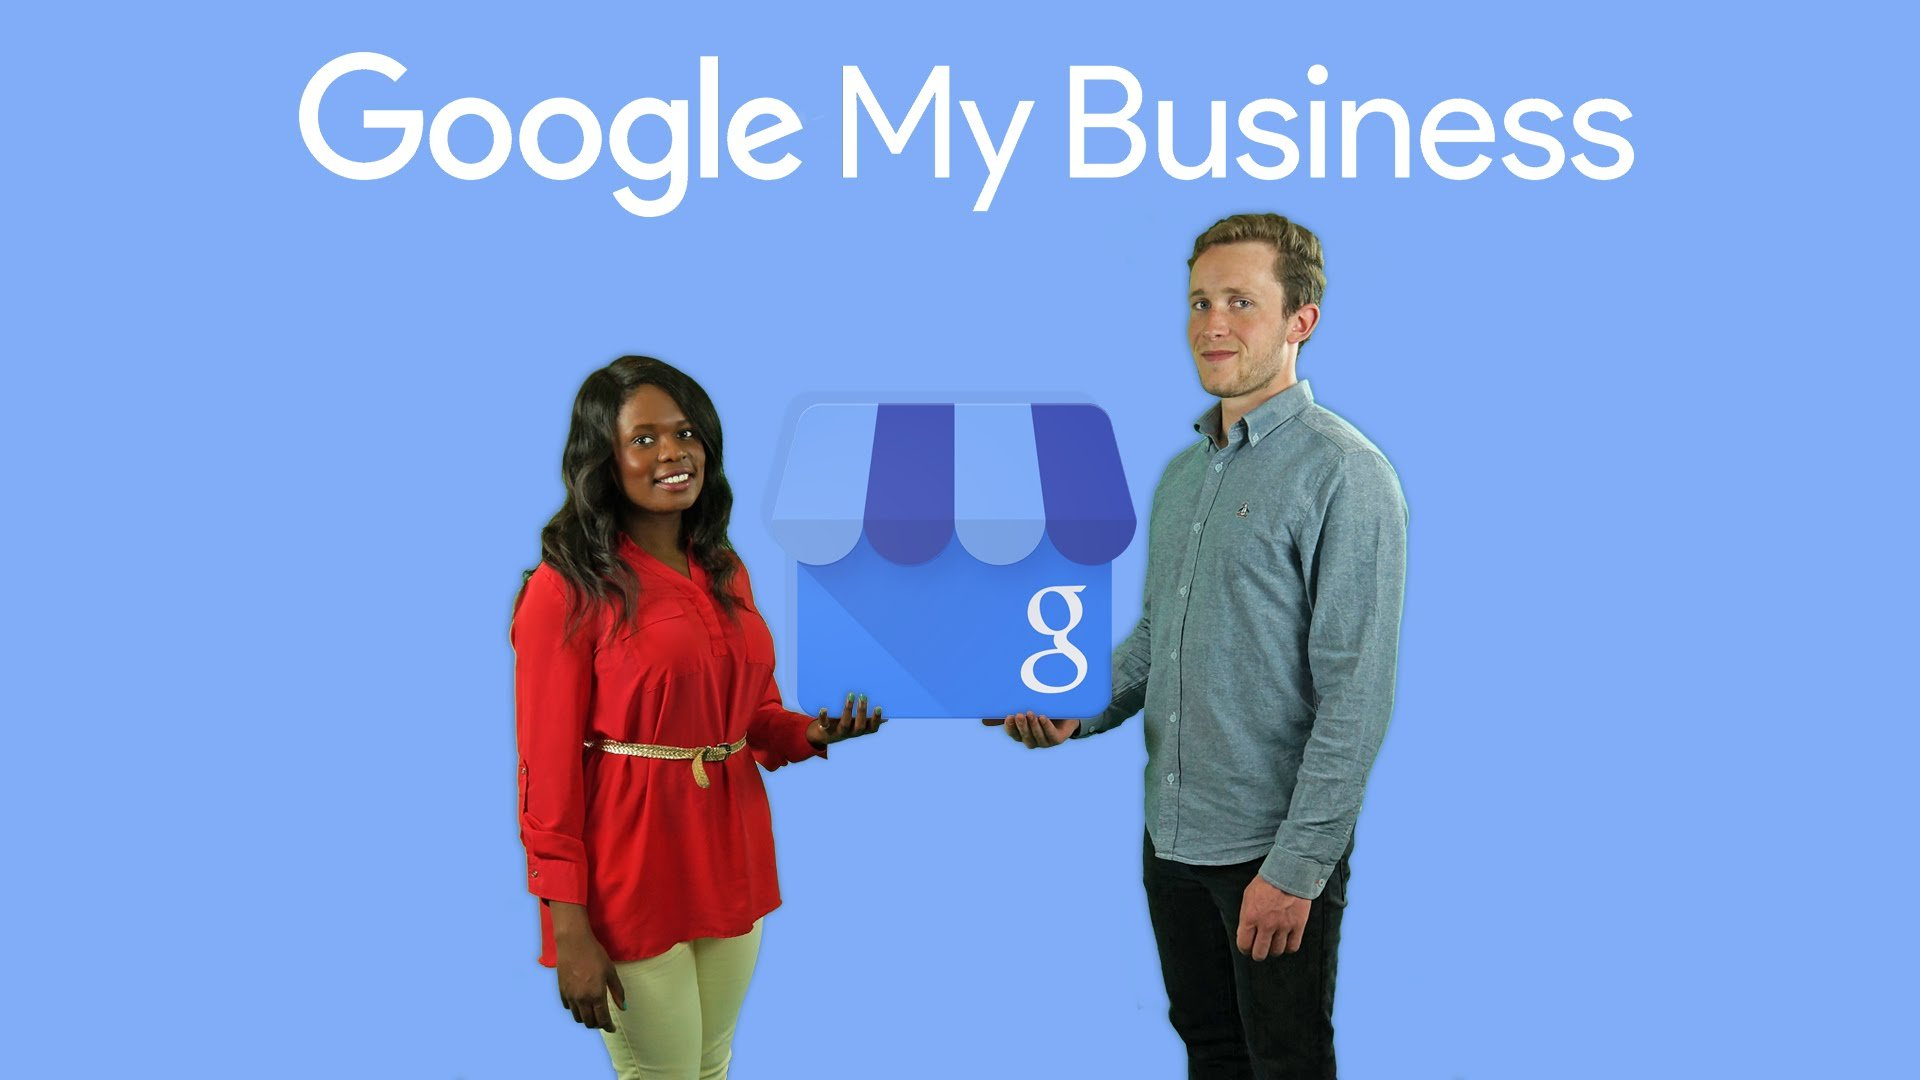 How to edit and update your business information on Google